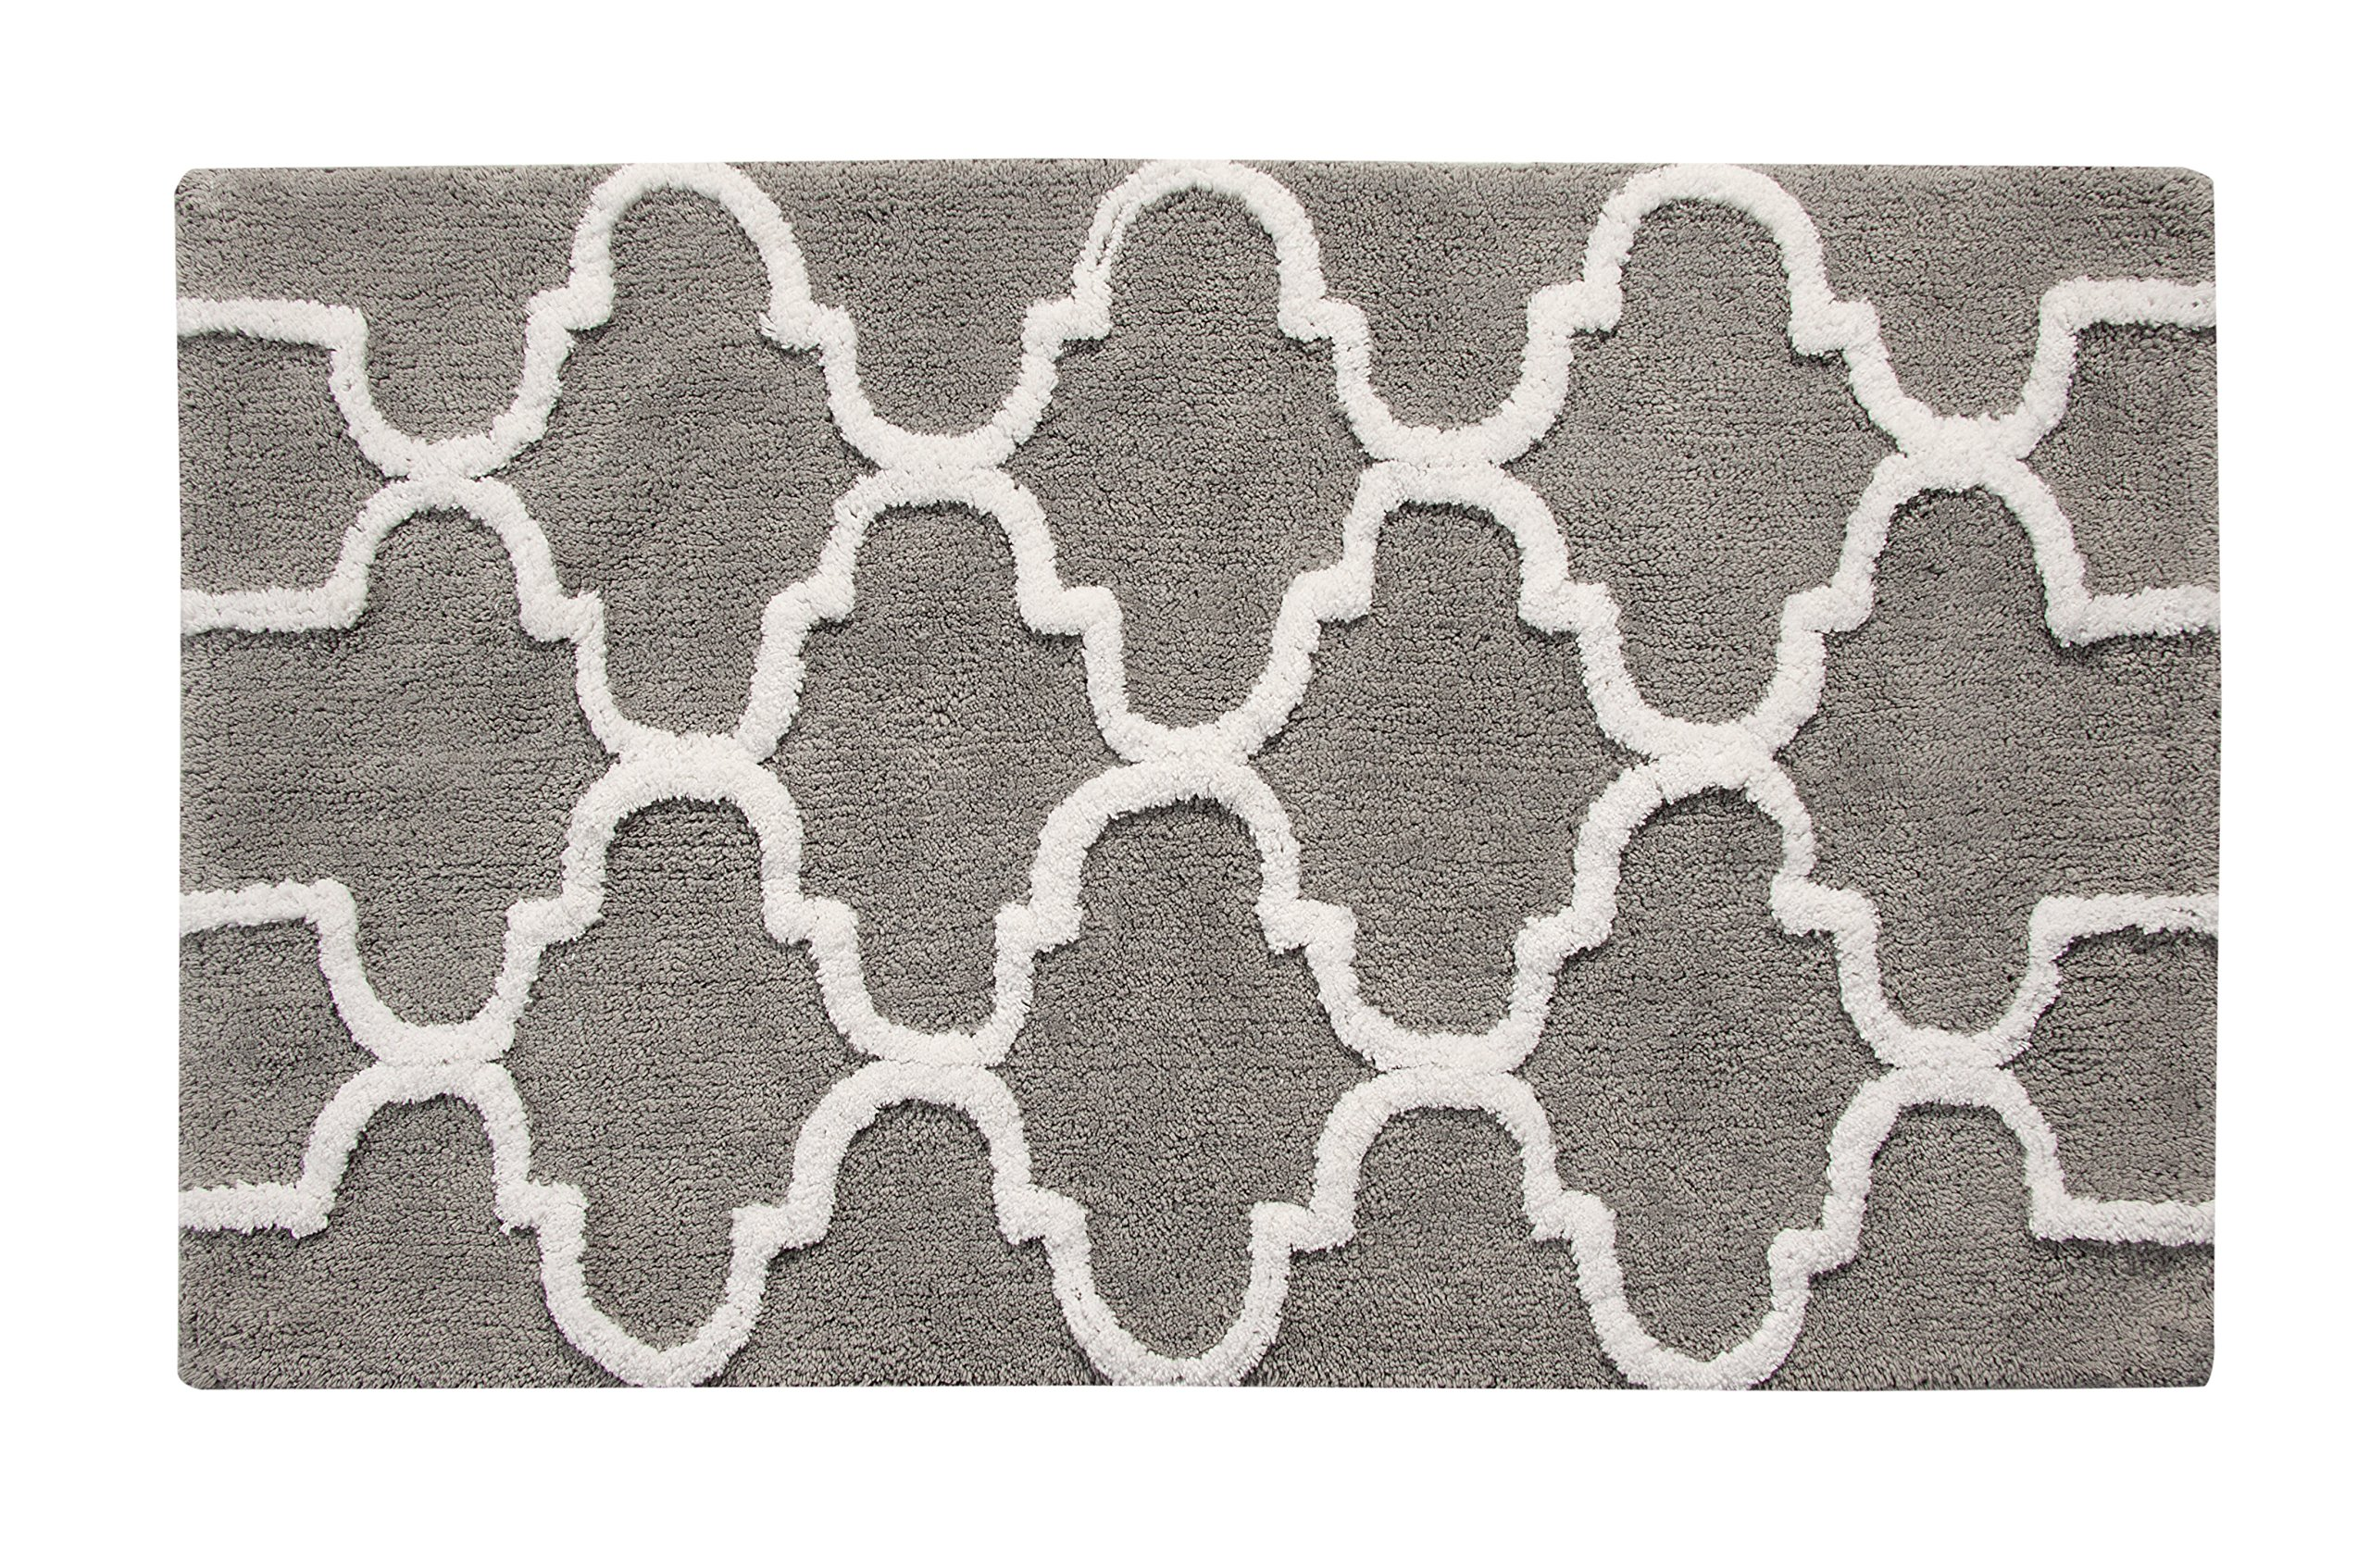 Saffron Fabs Bath Rug 100% Soft Cotton, Size 50x30 Inch, Latex Spray Non-Skid Backing, Grey/White Color, Geometric Pattern, Hand Tufted, Heavy 190 GSF Weight, Machine Washable, Rectangular Shape